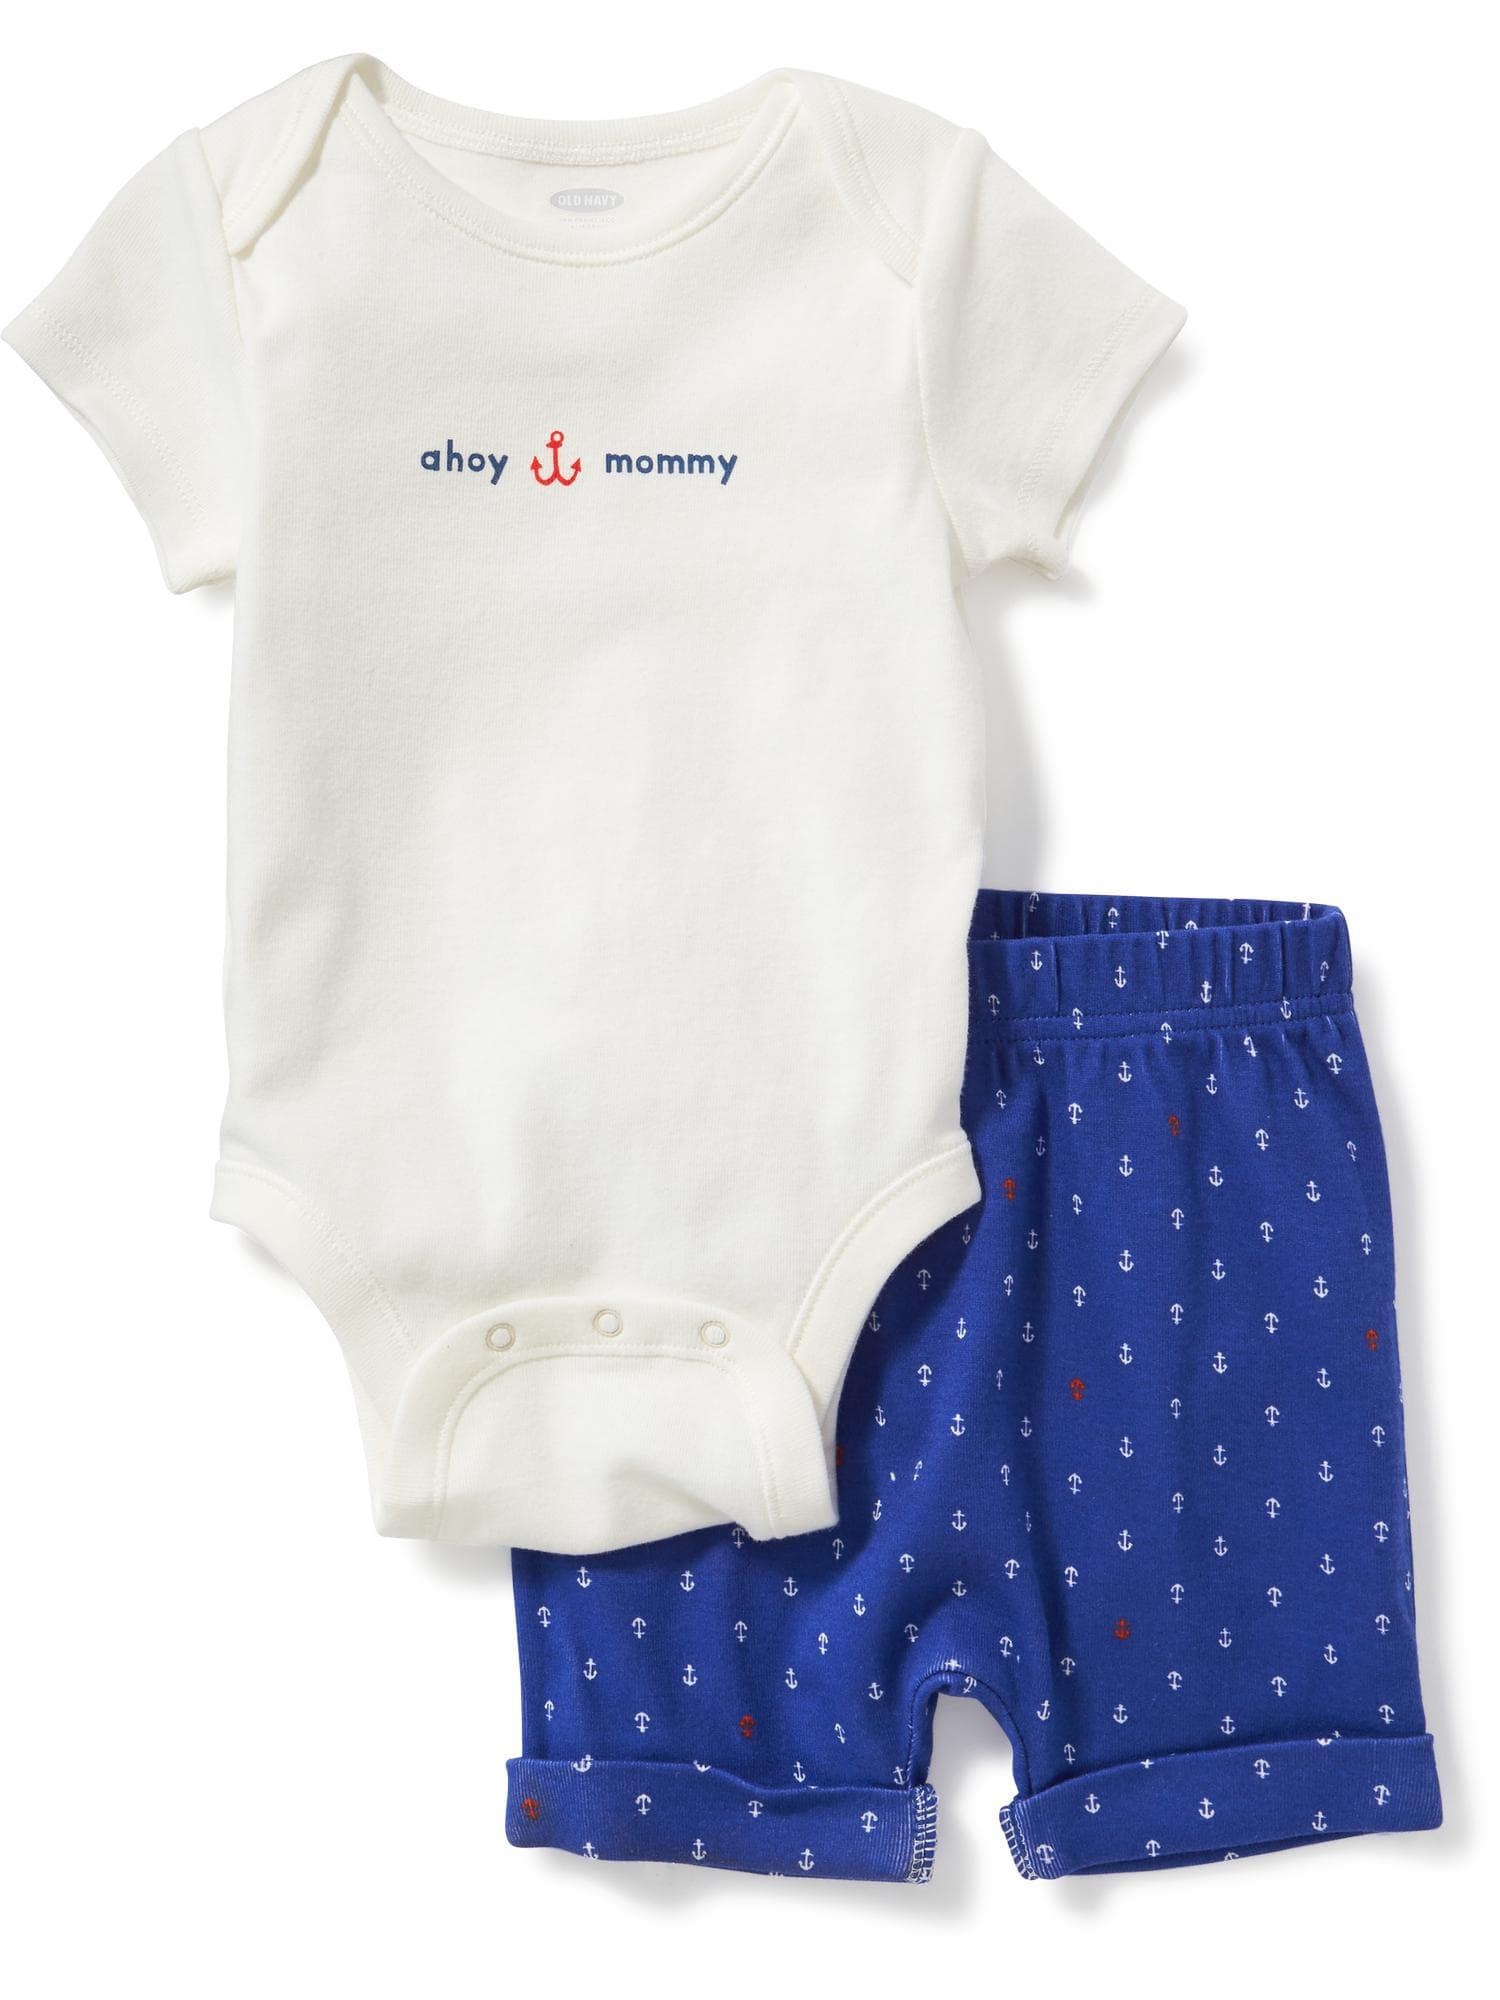 26f966c9d Lyst - Old Navy 2-piece Graphic Bodysuit And Shorts Set in White